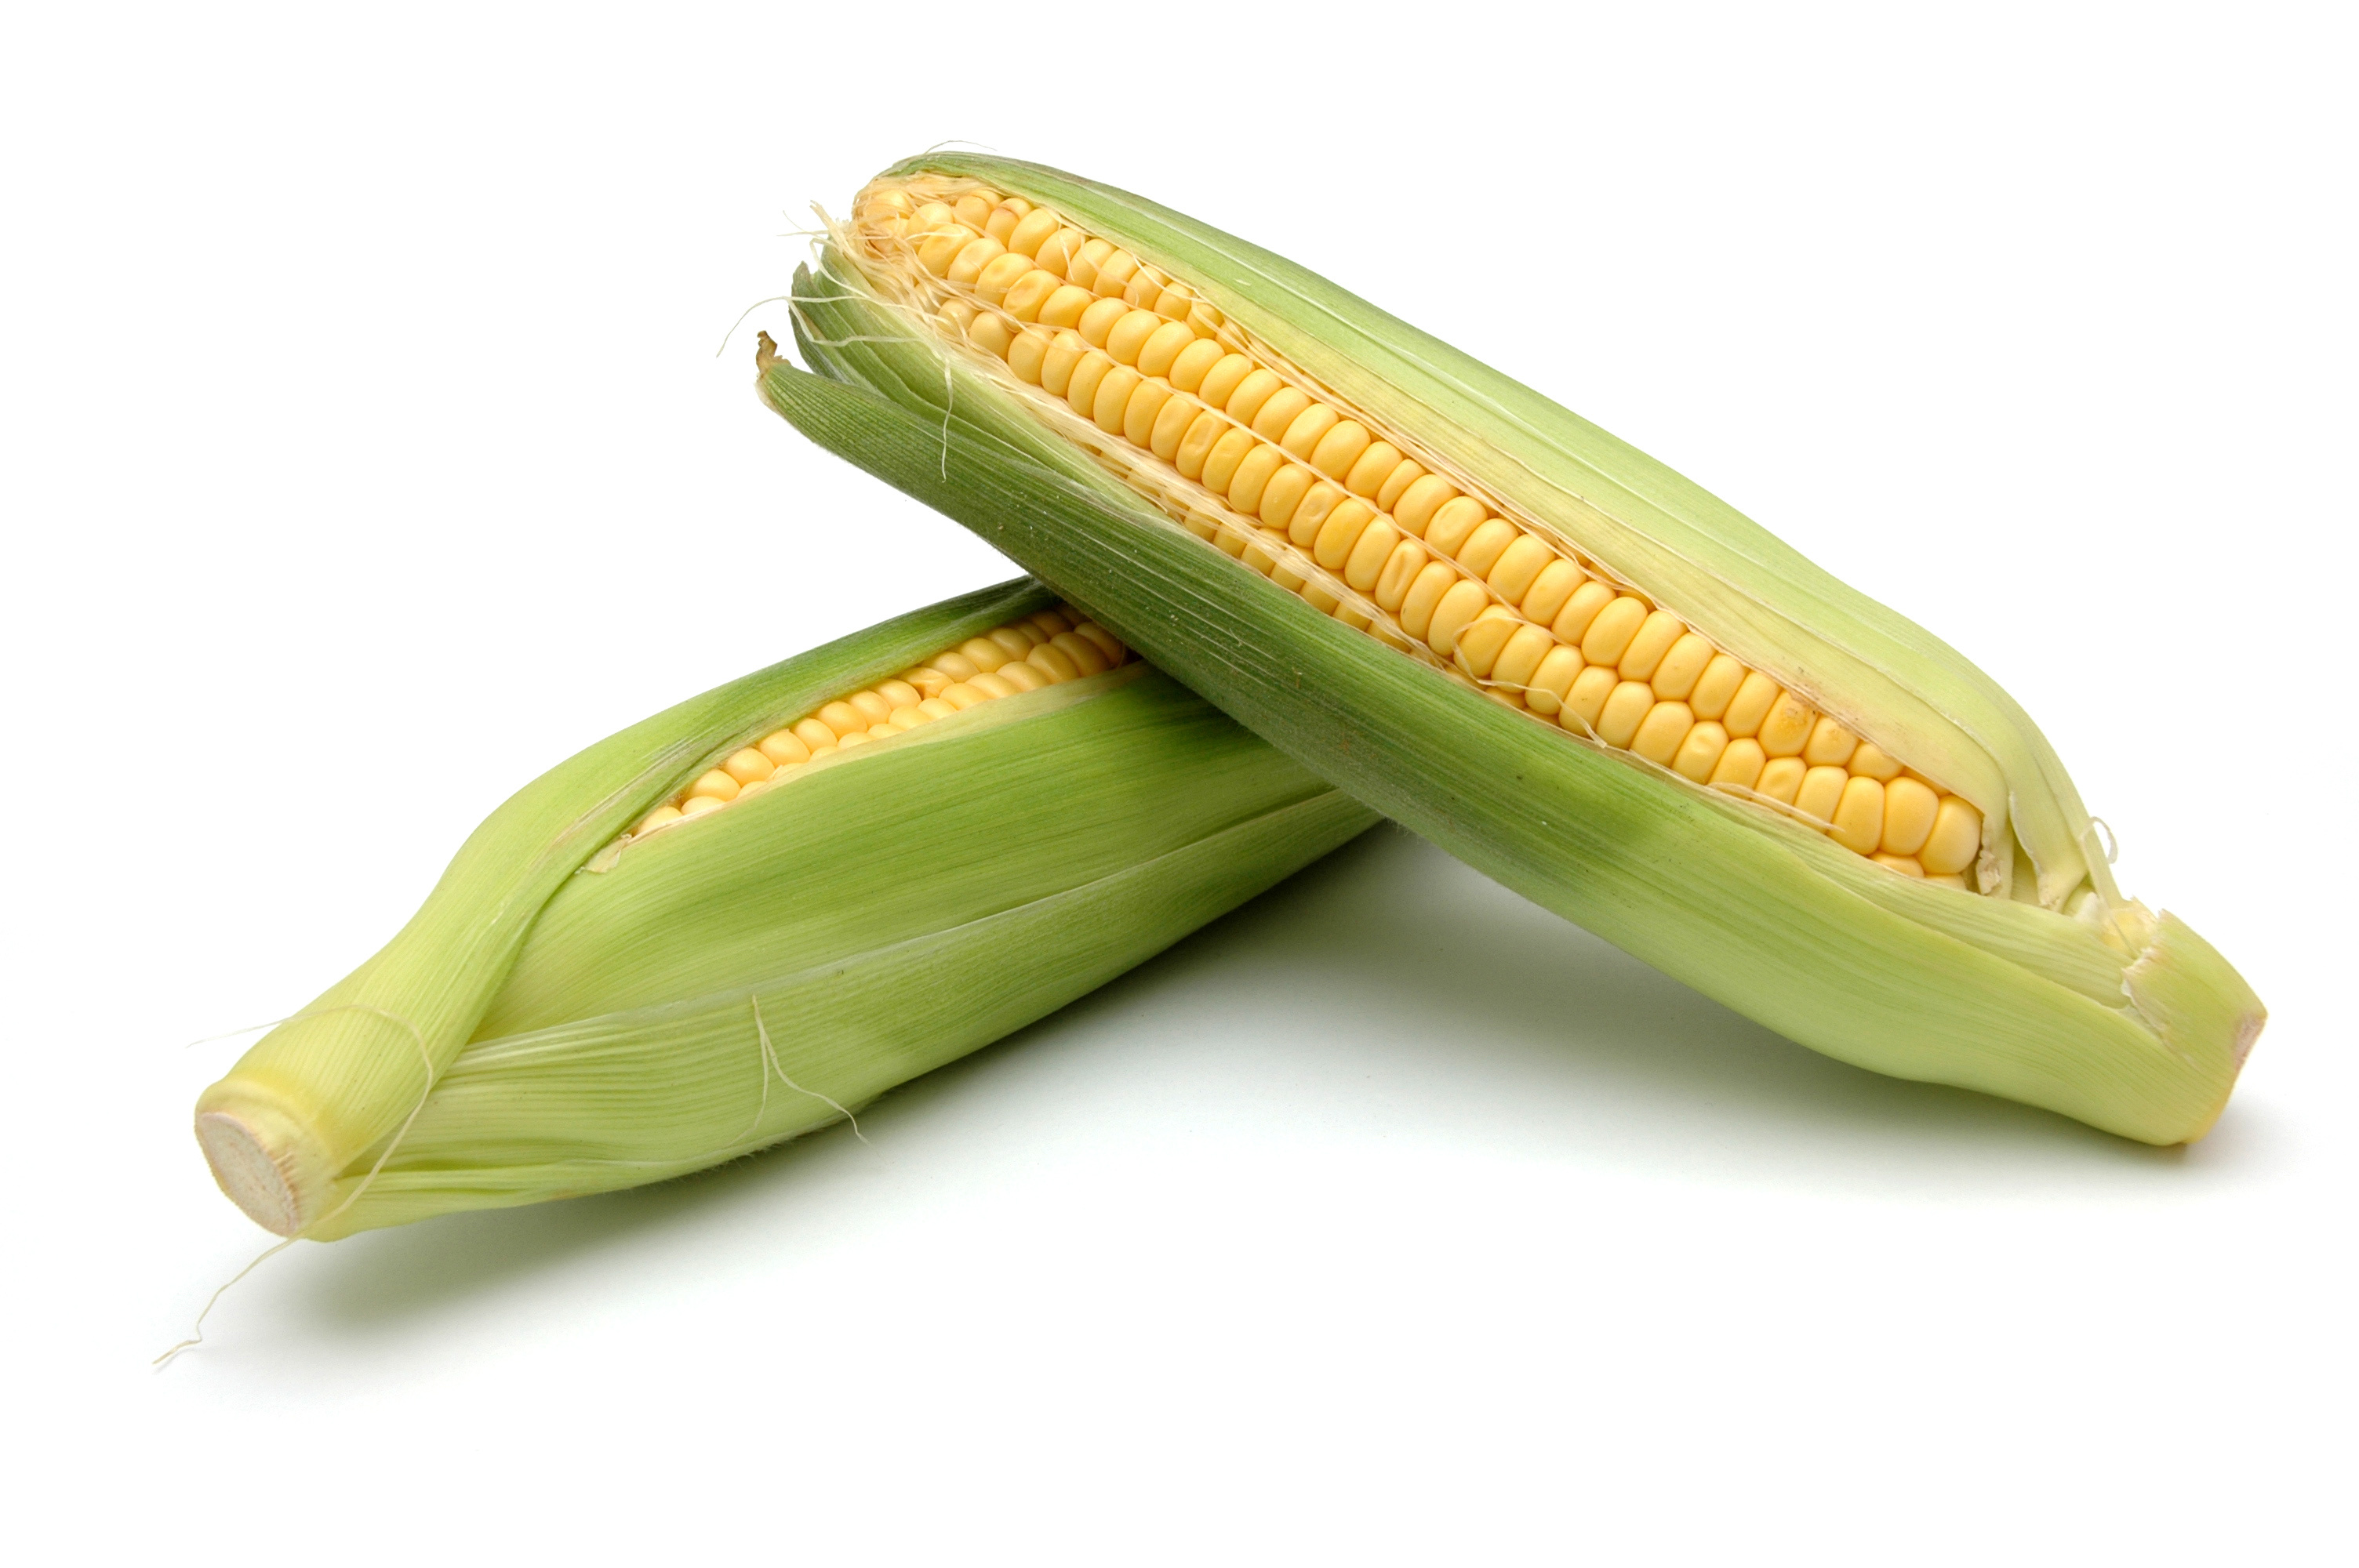 2 corn on cob